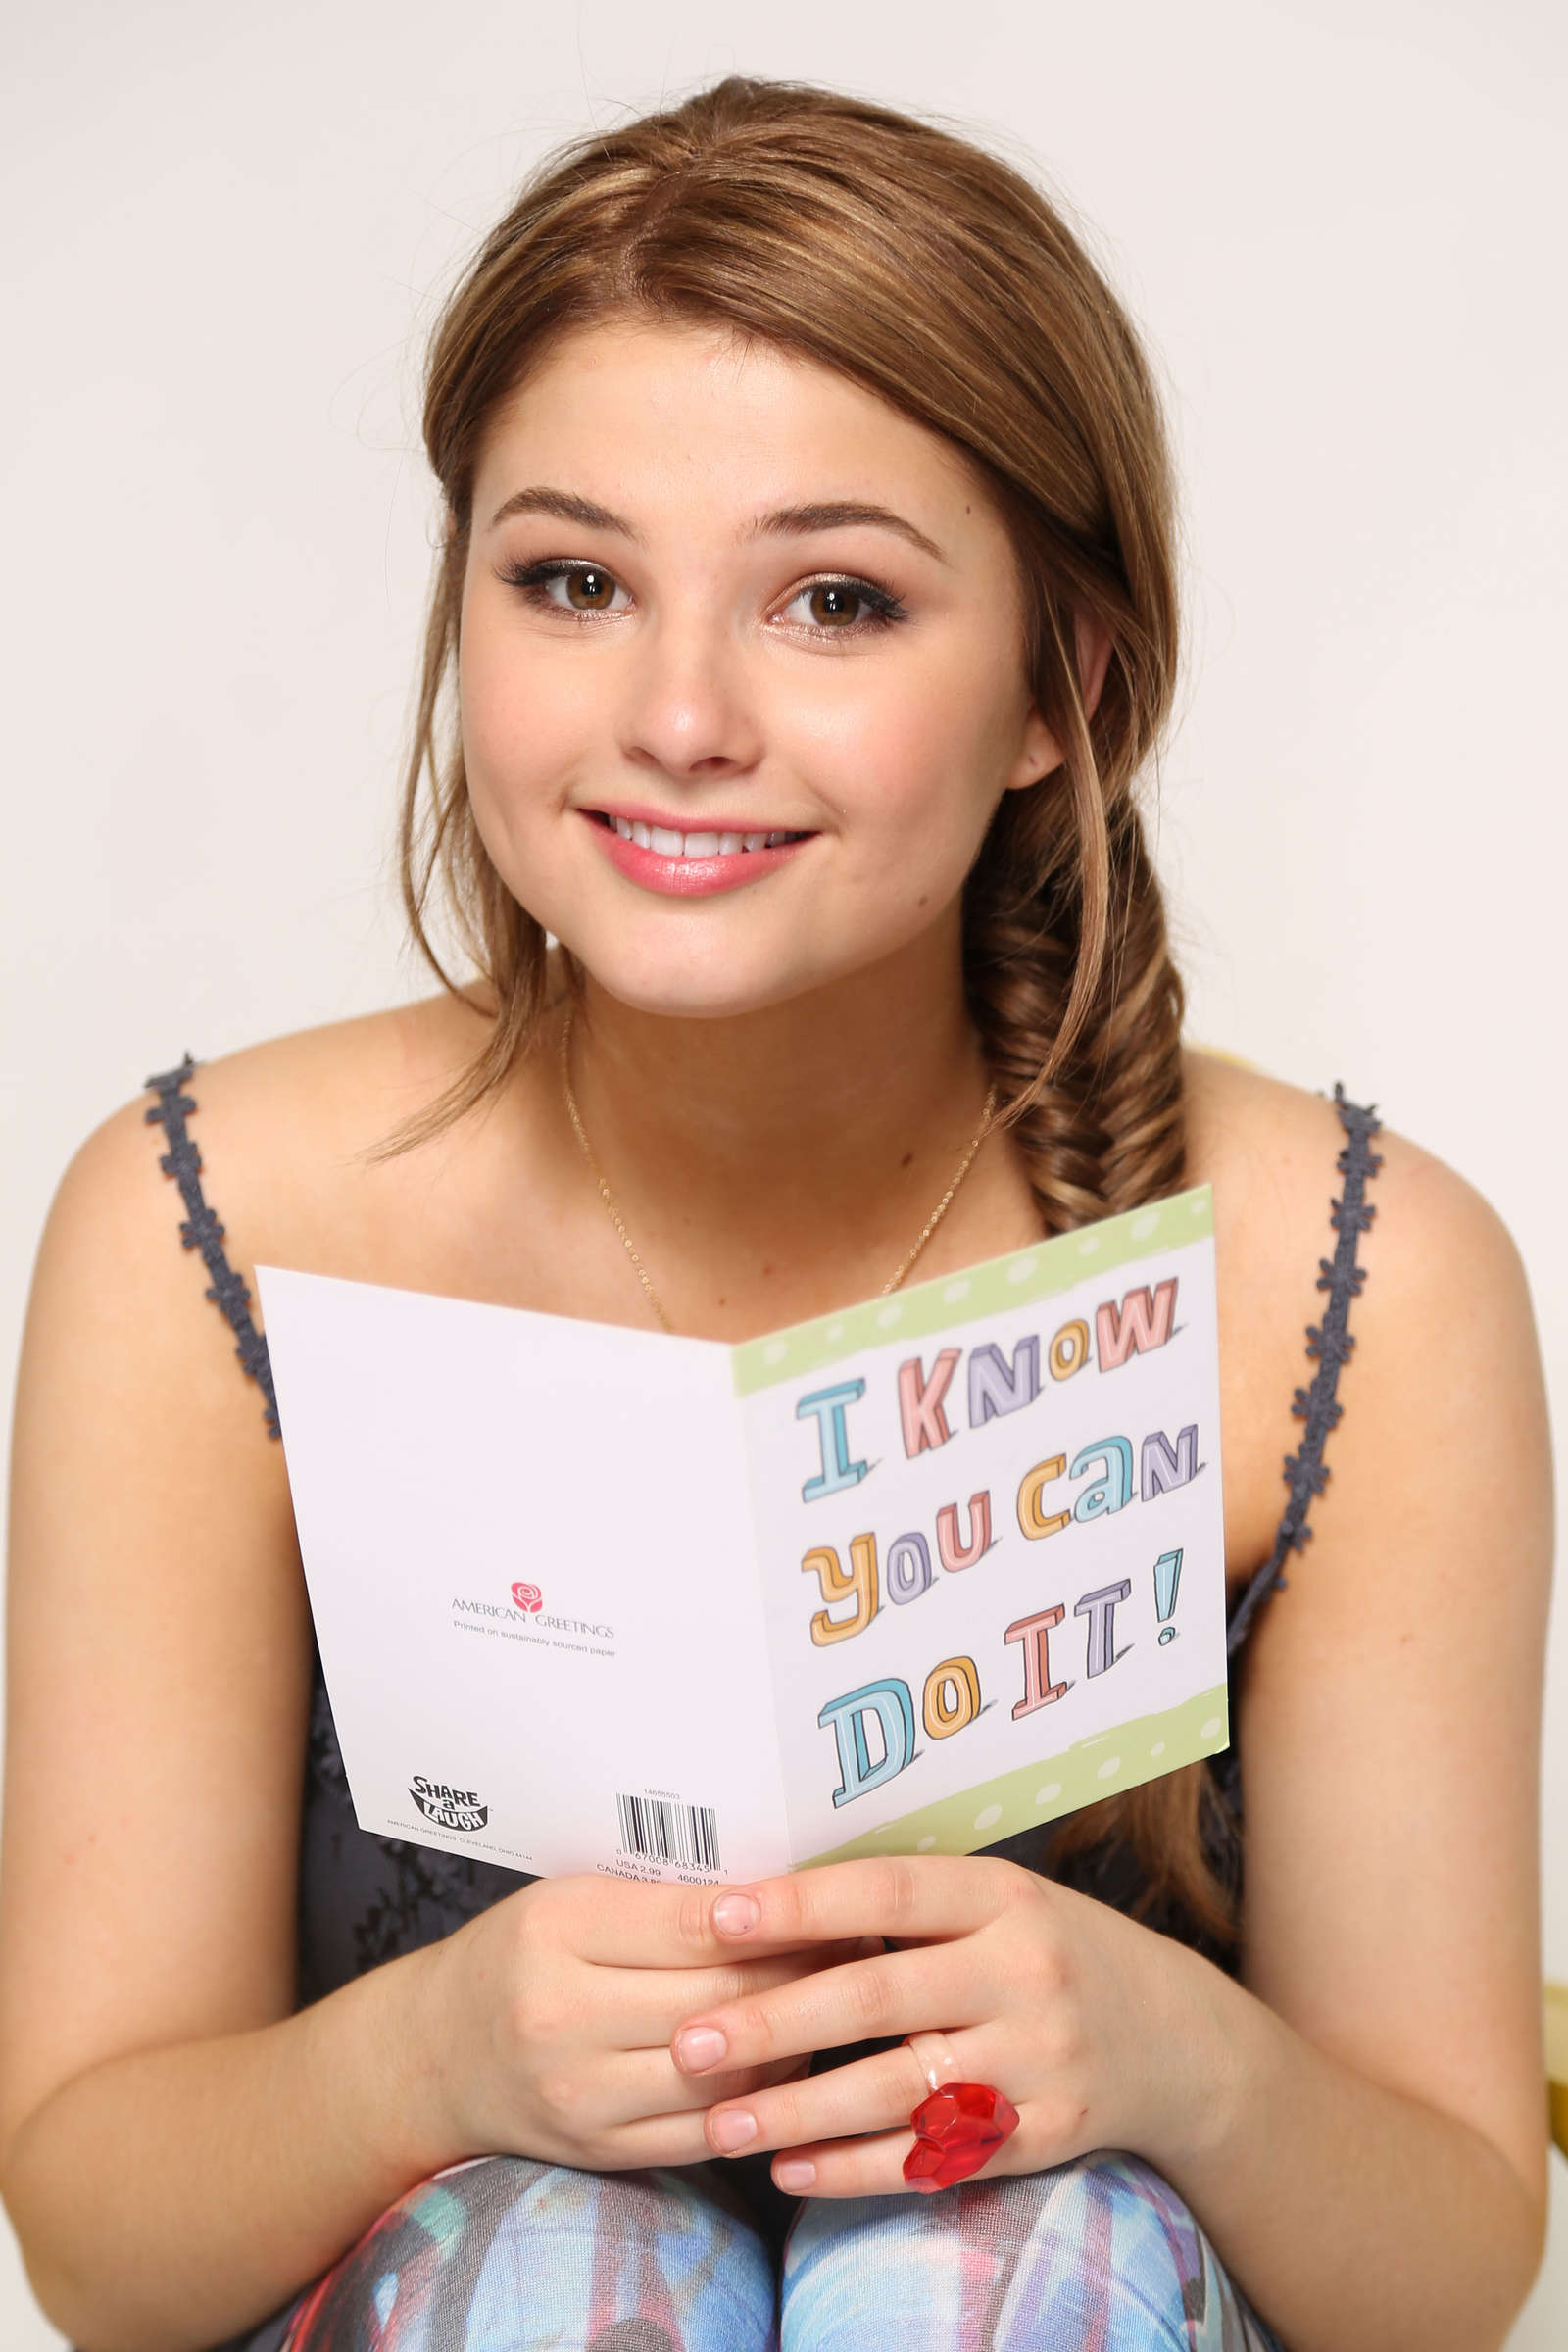 stefanie scott instastefanie scott vk, stefanie scott 2016, stefanie scott insidious, stefanie scott pose, stefanie scott (ii), stefanie scott boyfriend, stefanie scott 2015, stefanie scott screencaps, stefanie scott songs, stefanie scott hit me up, stefanie scott everything has changed, stefanie scott height in feet, stefanie scott insidious 3, stefanie scott insta, stefanie scott and, stefanie scott source, stefanie scott bound, stefanie scott tumblr gif, stefanie scott hq, stefanie scott bio